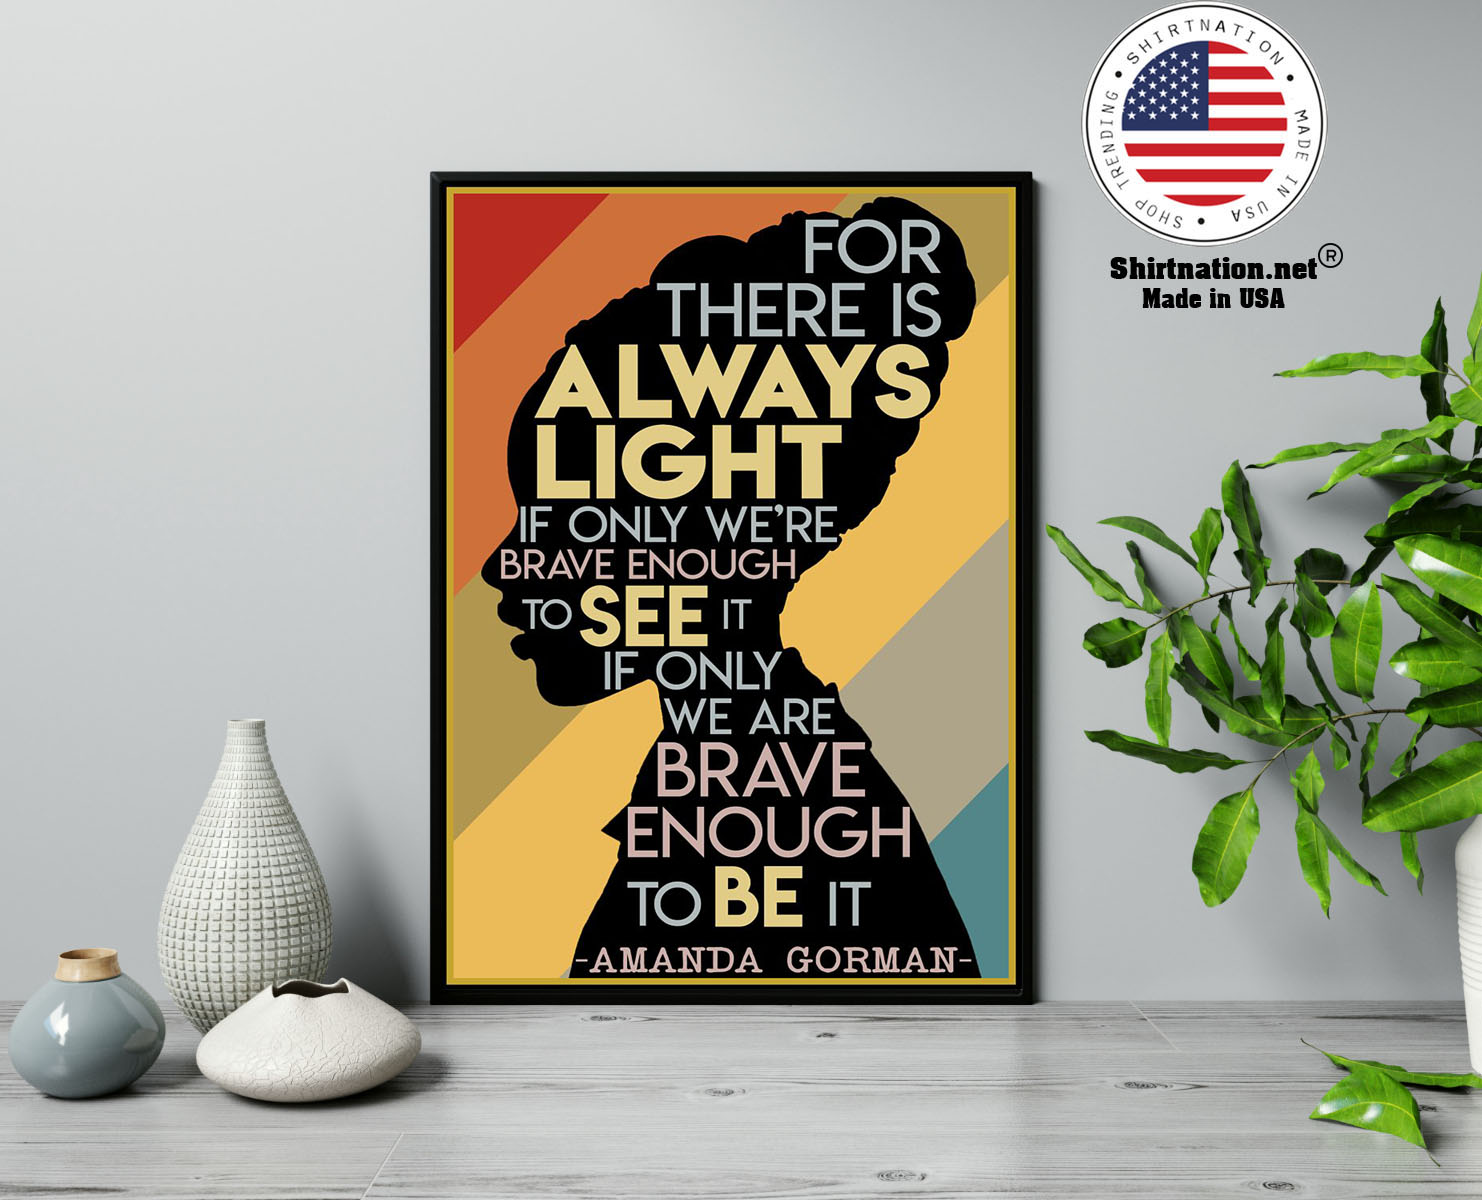 Amanda Gorman Hill we climb for there is always light poster 13